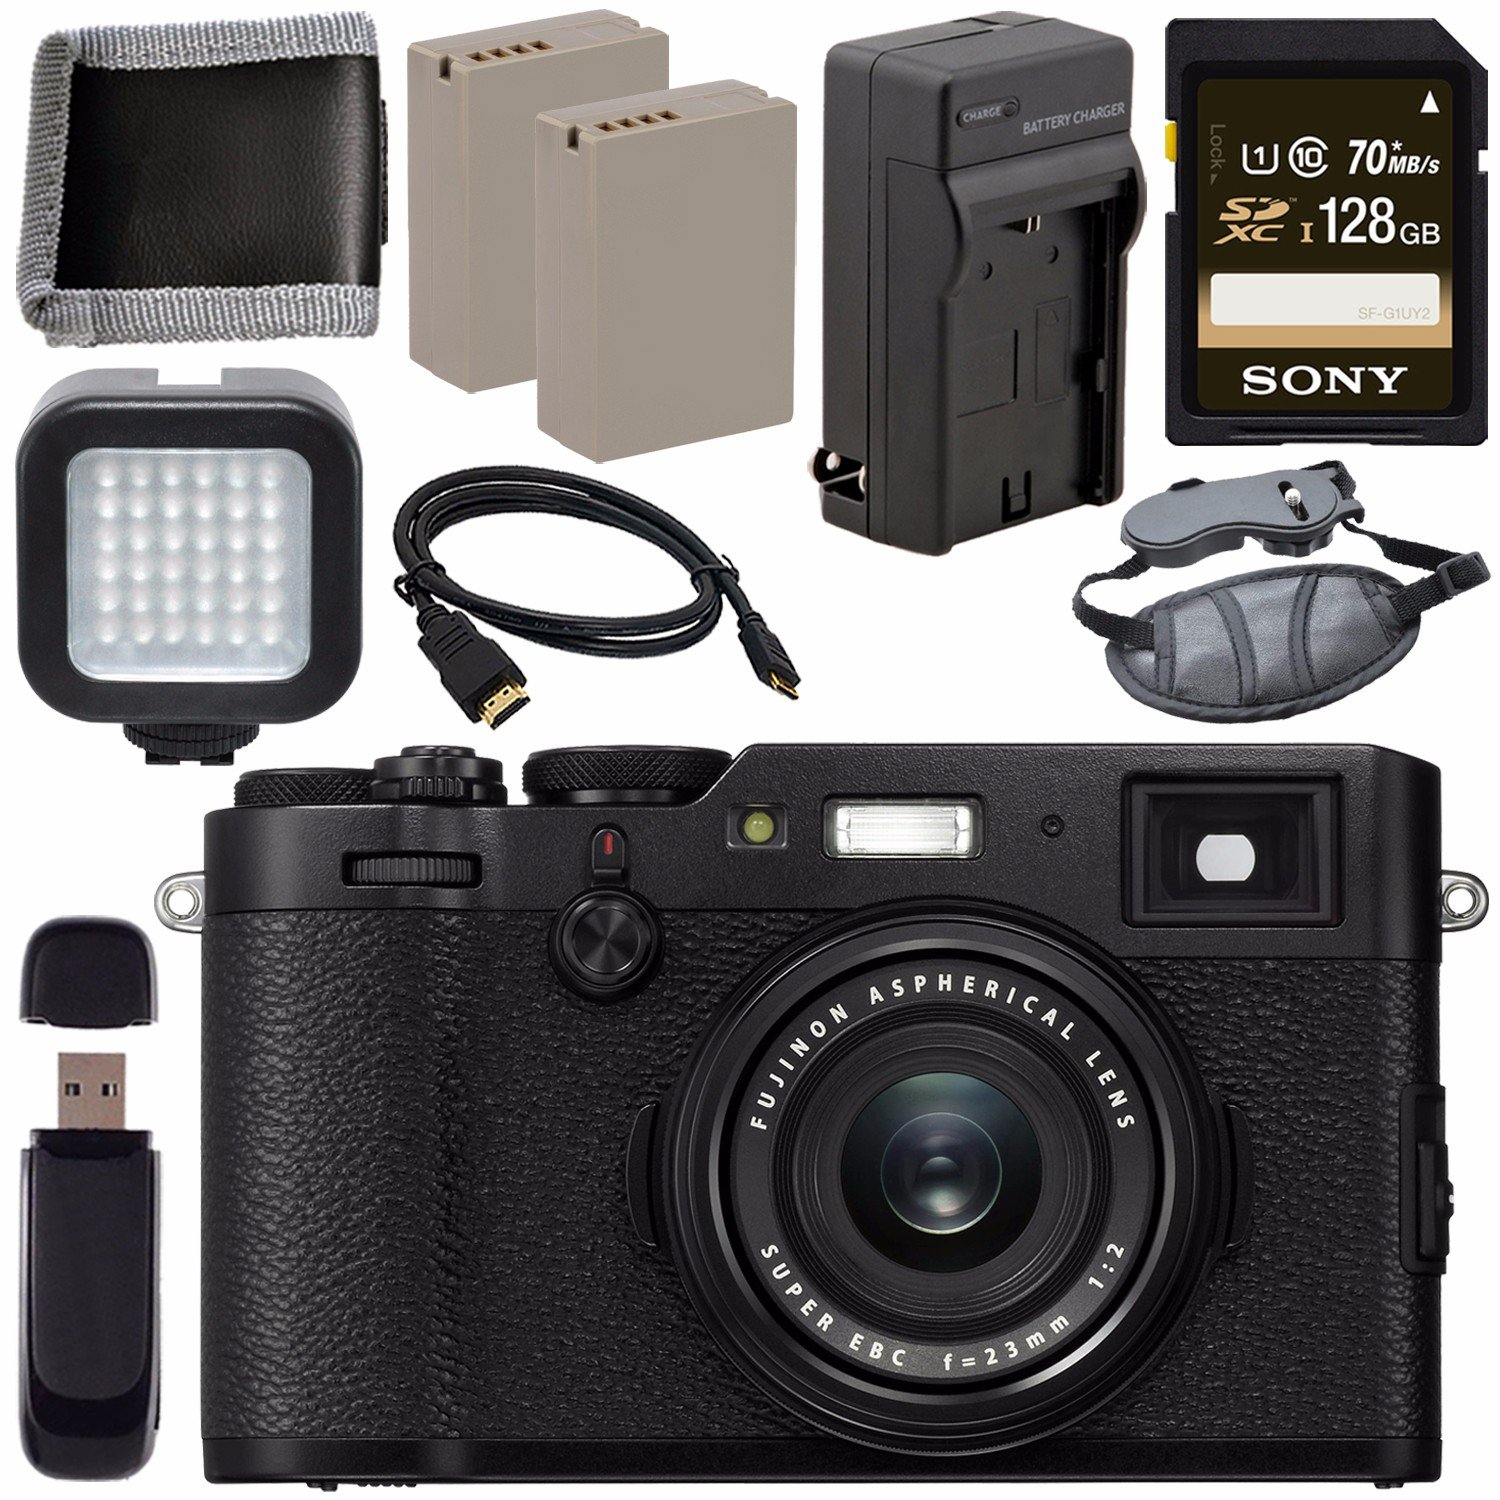 Fujifilm X100F Digital Camera + NP-W126 Lithium Ion Battery + External  Rapid Charger + SDXC Card + Micro HDMI Cable + Memory Card Wallet + Card  Reader